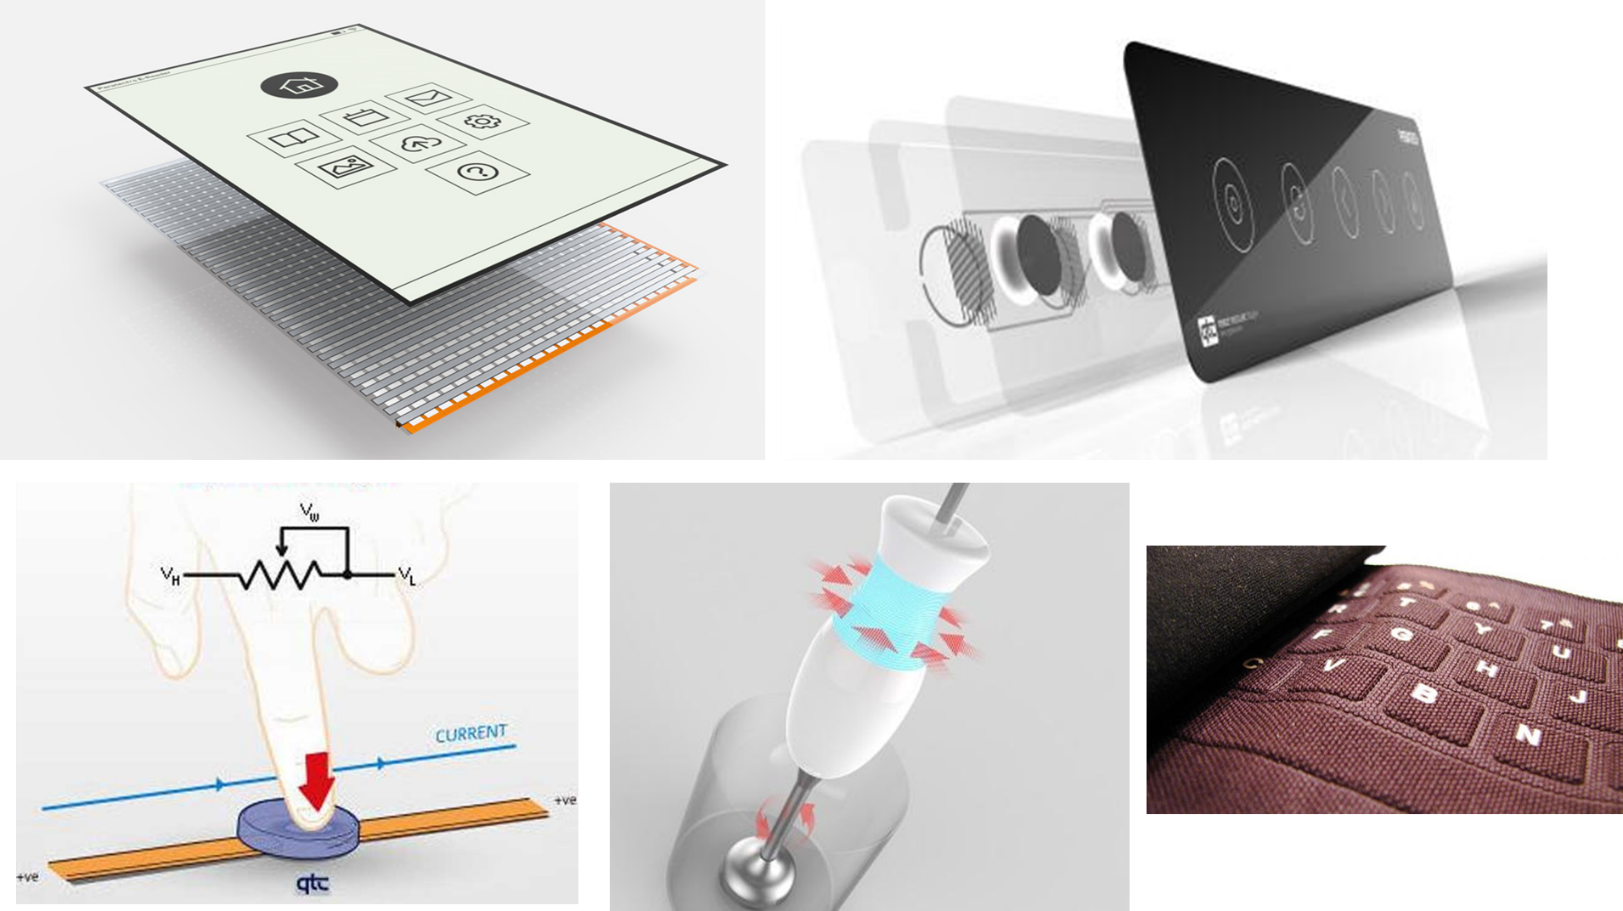 Design Hmi Flexible Hybrid Electronics Telephone Circuit Hands Over Tech Peratech Can Print A Smart Button On Any Surface Of Materials Including Laminated Wood Said Stark That I Think Is The Dream Every Industrial